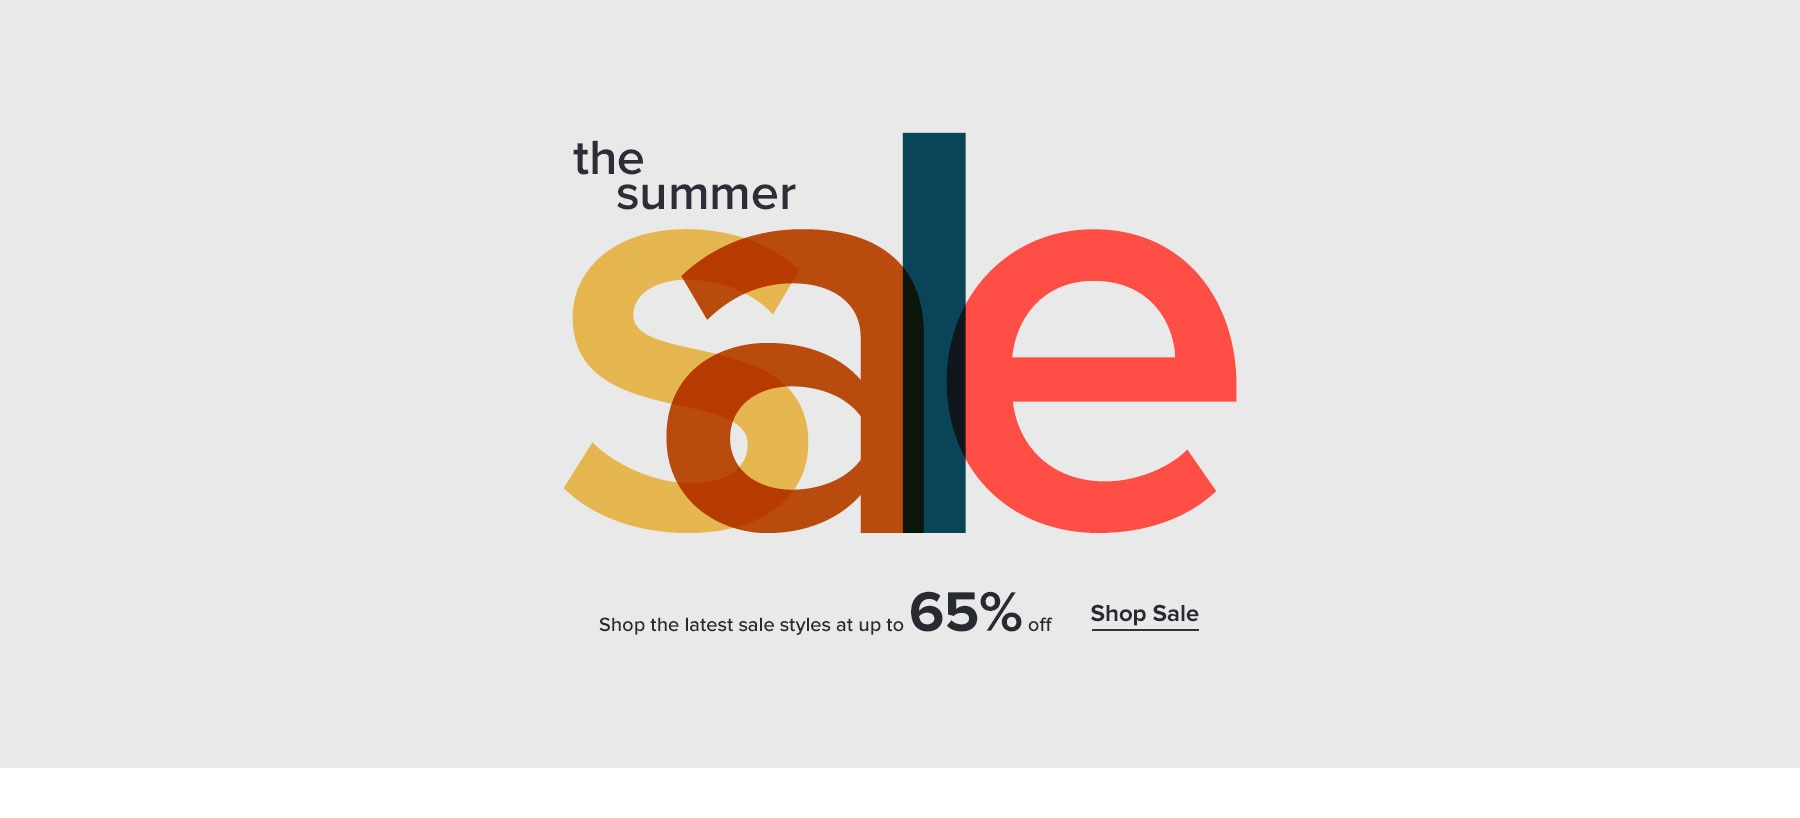 THE SUMMER SALE. Shop the latest sale styles at up to 65% off. SHOP SALE.